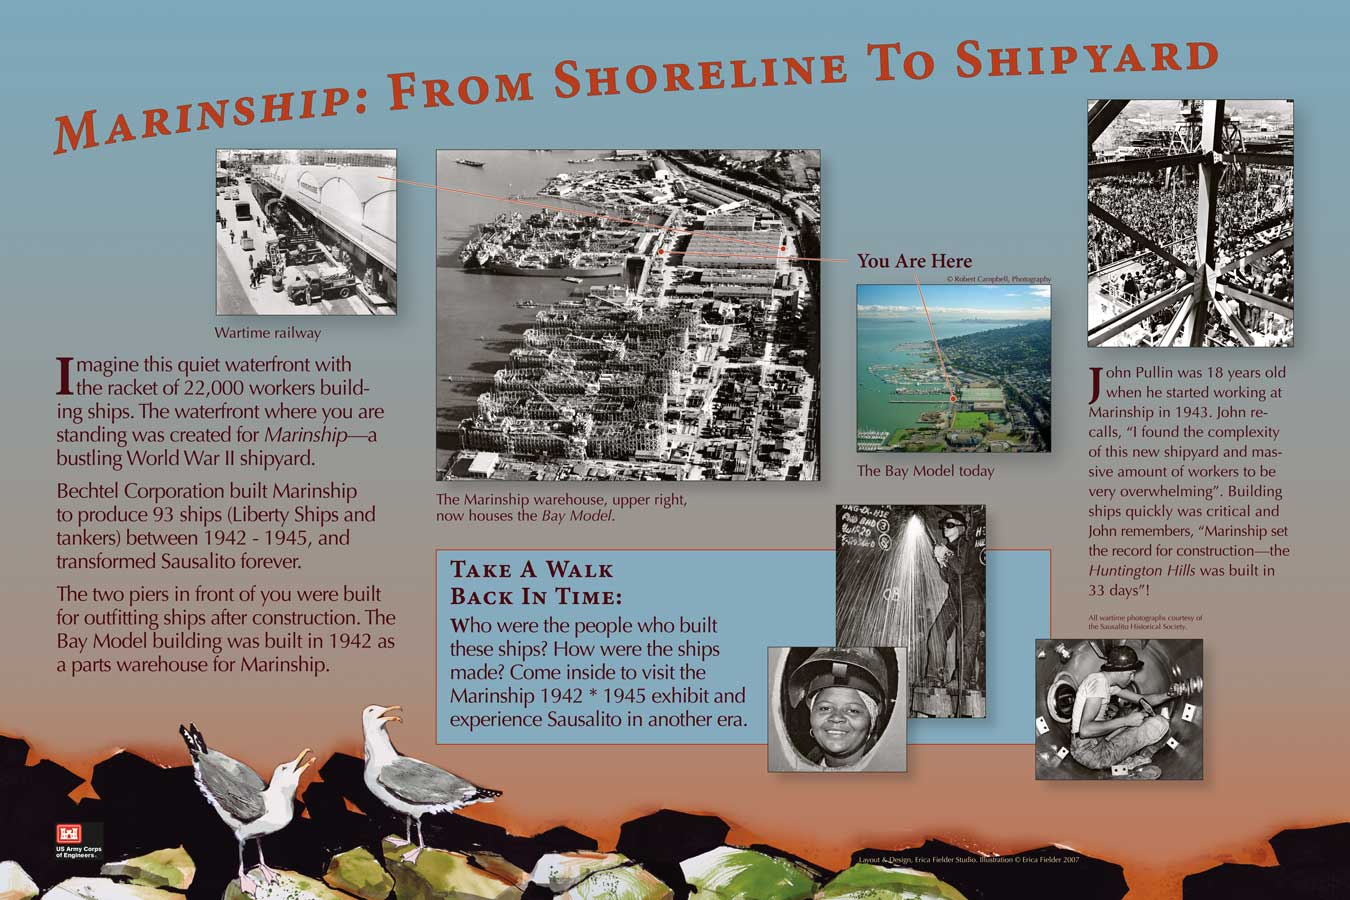 Bechtel Corporation built Marinship to produce 93 Liberty Ship and tankers between 1942-1945. Today, some of the buildings that housed ship-building activity are now home to the San Francisco Bay Model in Sausalito, California. The Army Corps of Engineers funded this interpretive signs.